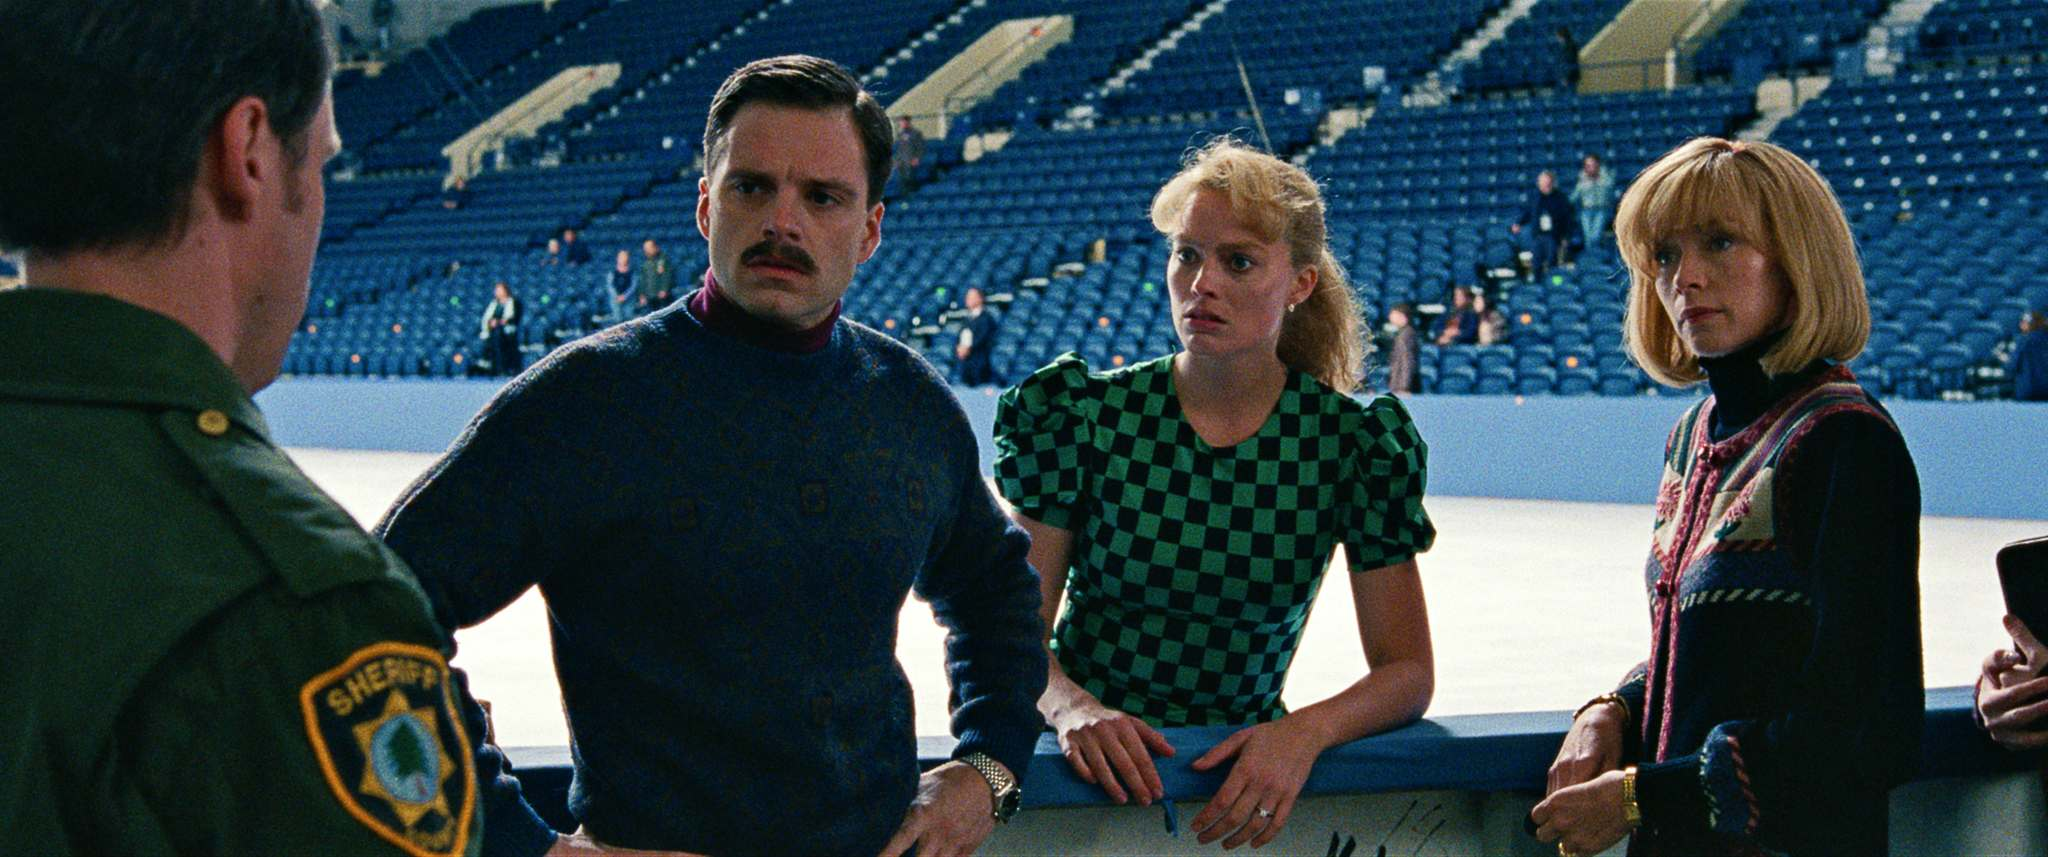 Neon</p><p>From left: Sebastian Stan as Jeff Gillooly, Margot Robbie as Tonya Harding and Julianne Nicholson as Diane Rawlinson in a scene from I, Tonya.</p></p>